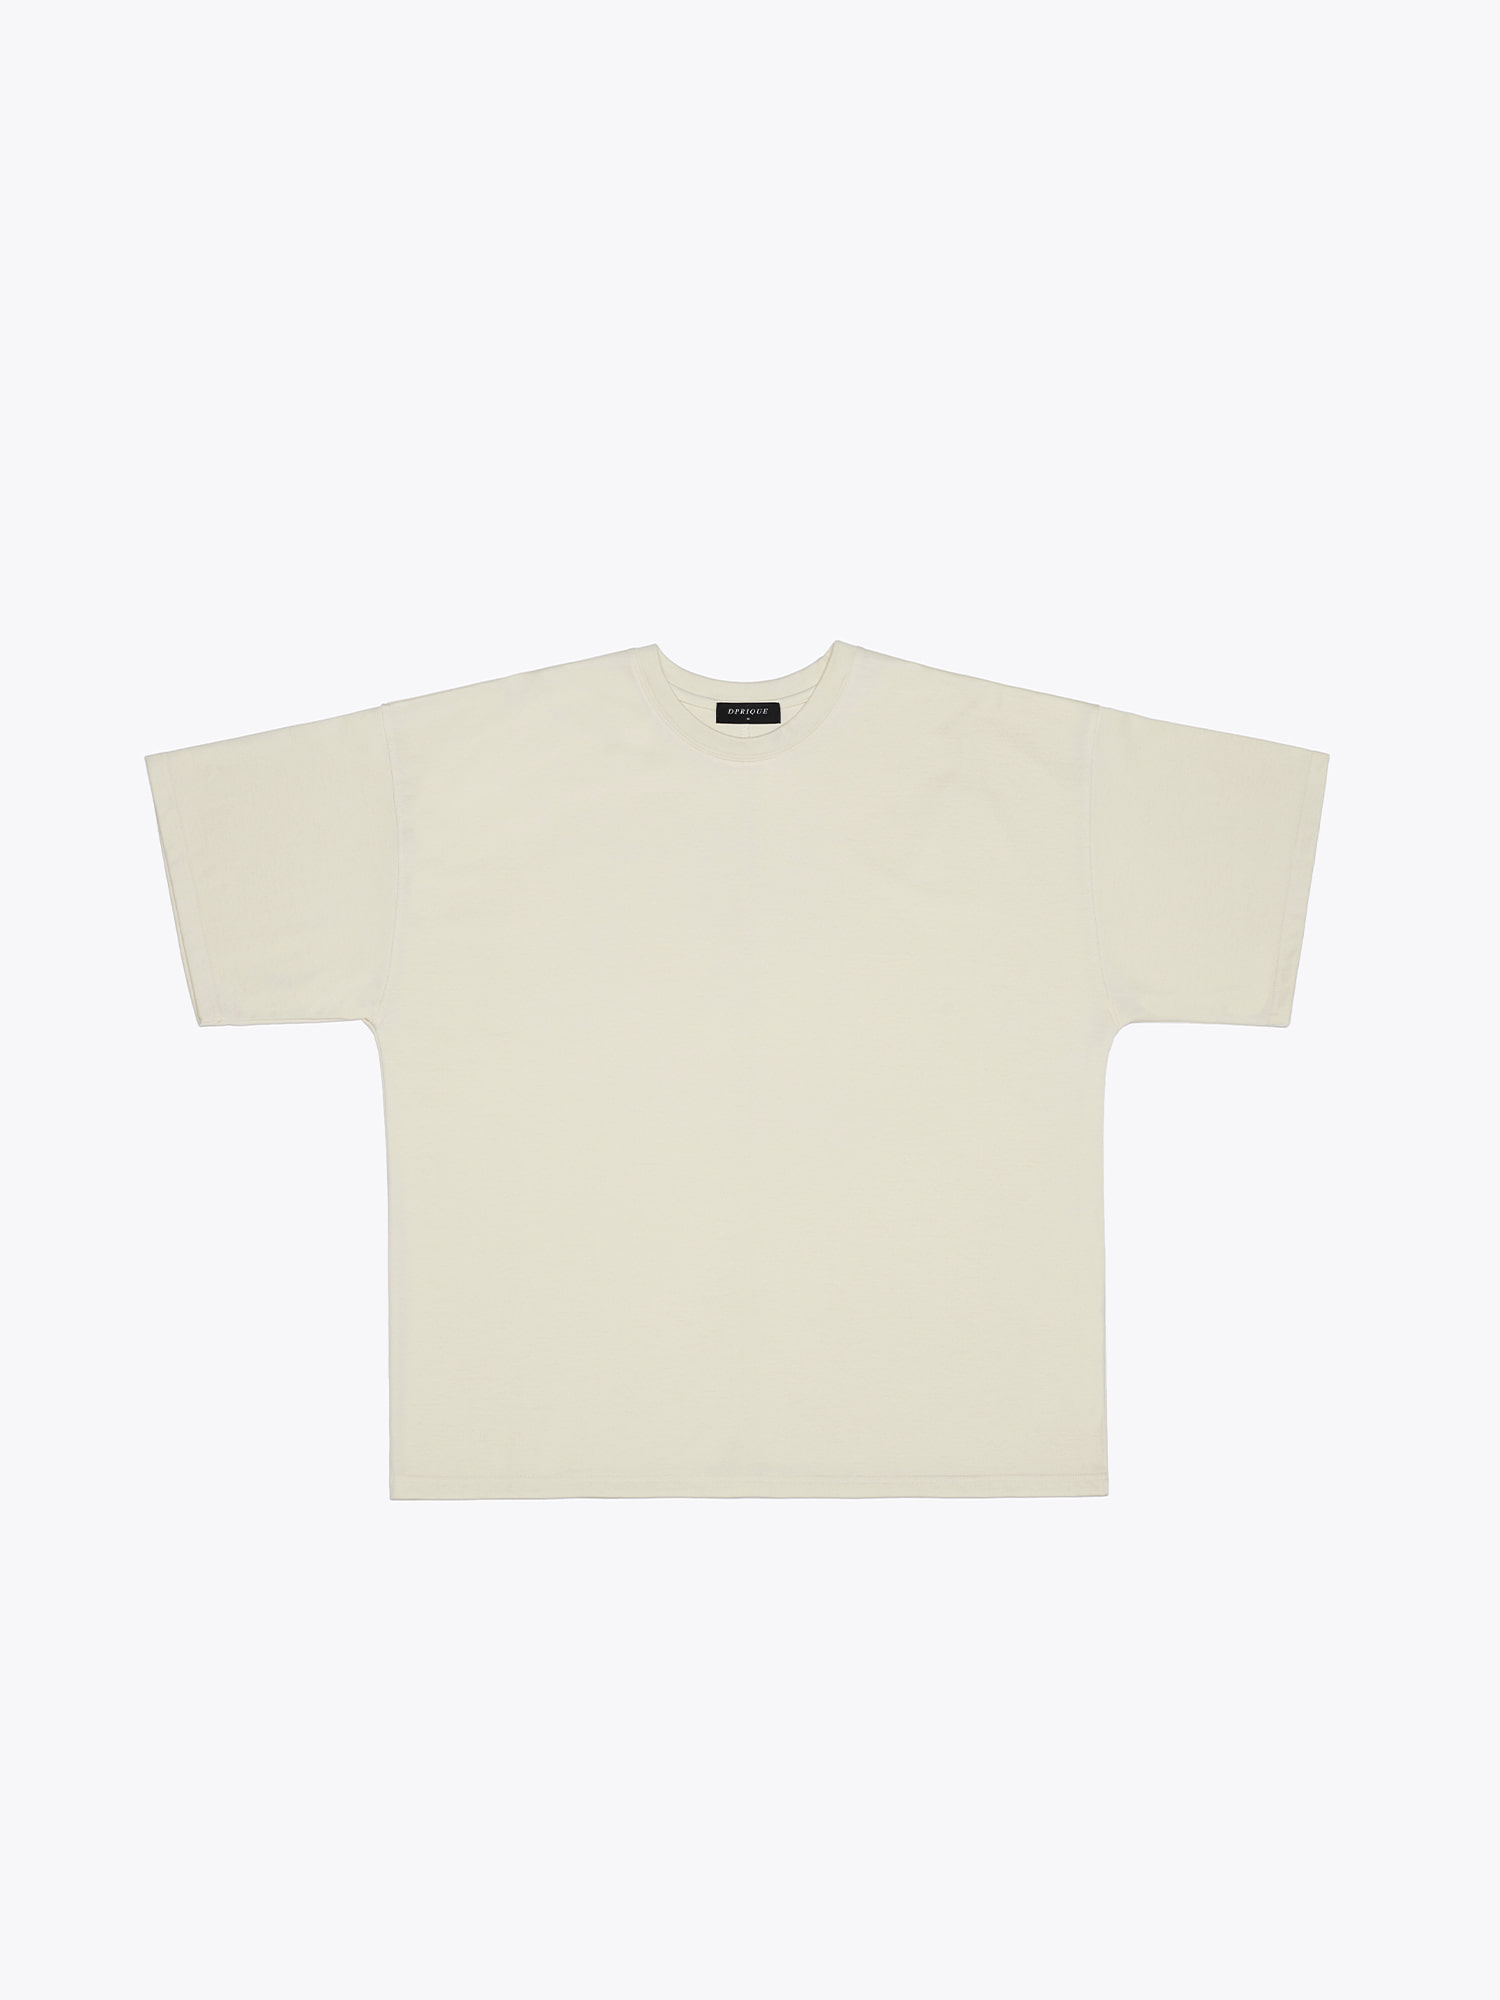 05 Oversized T-Shirt - Beige